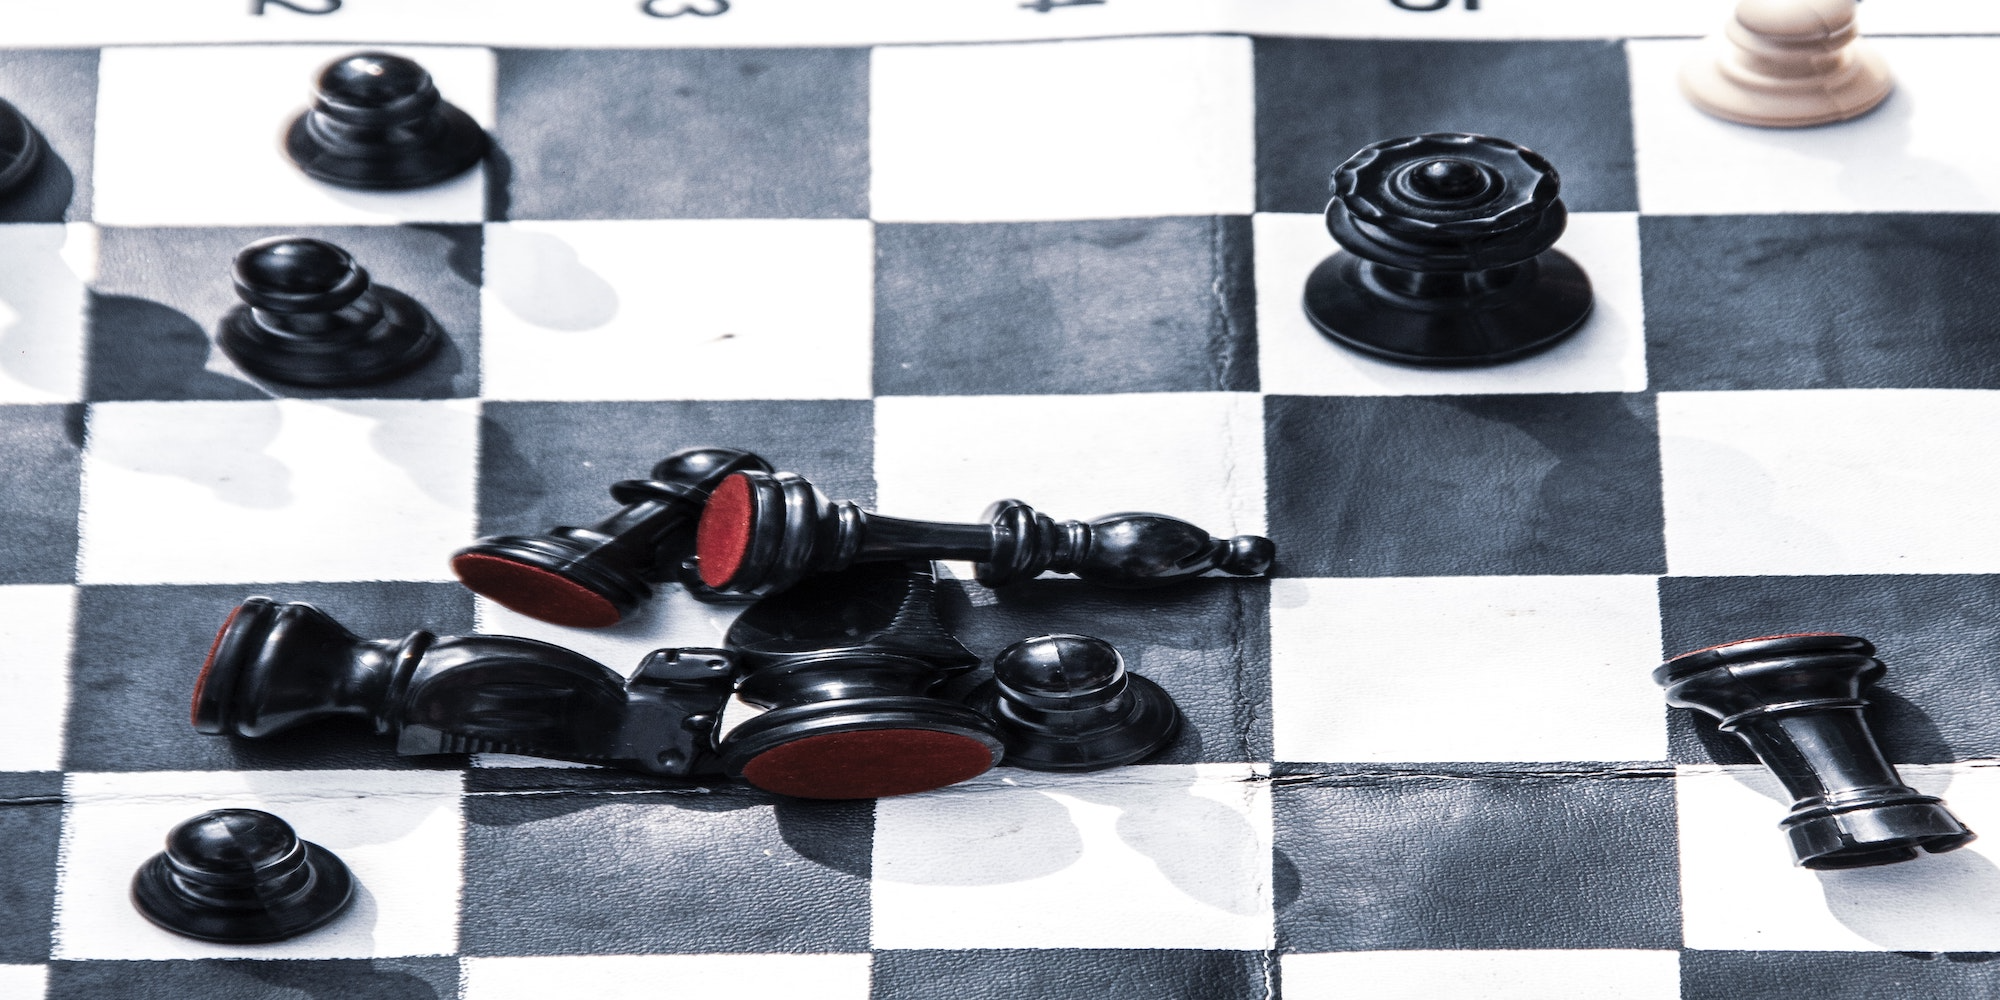 Stretched photo of a chessboard.